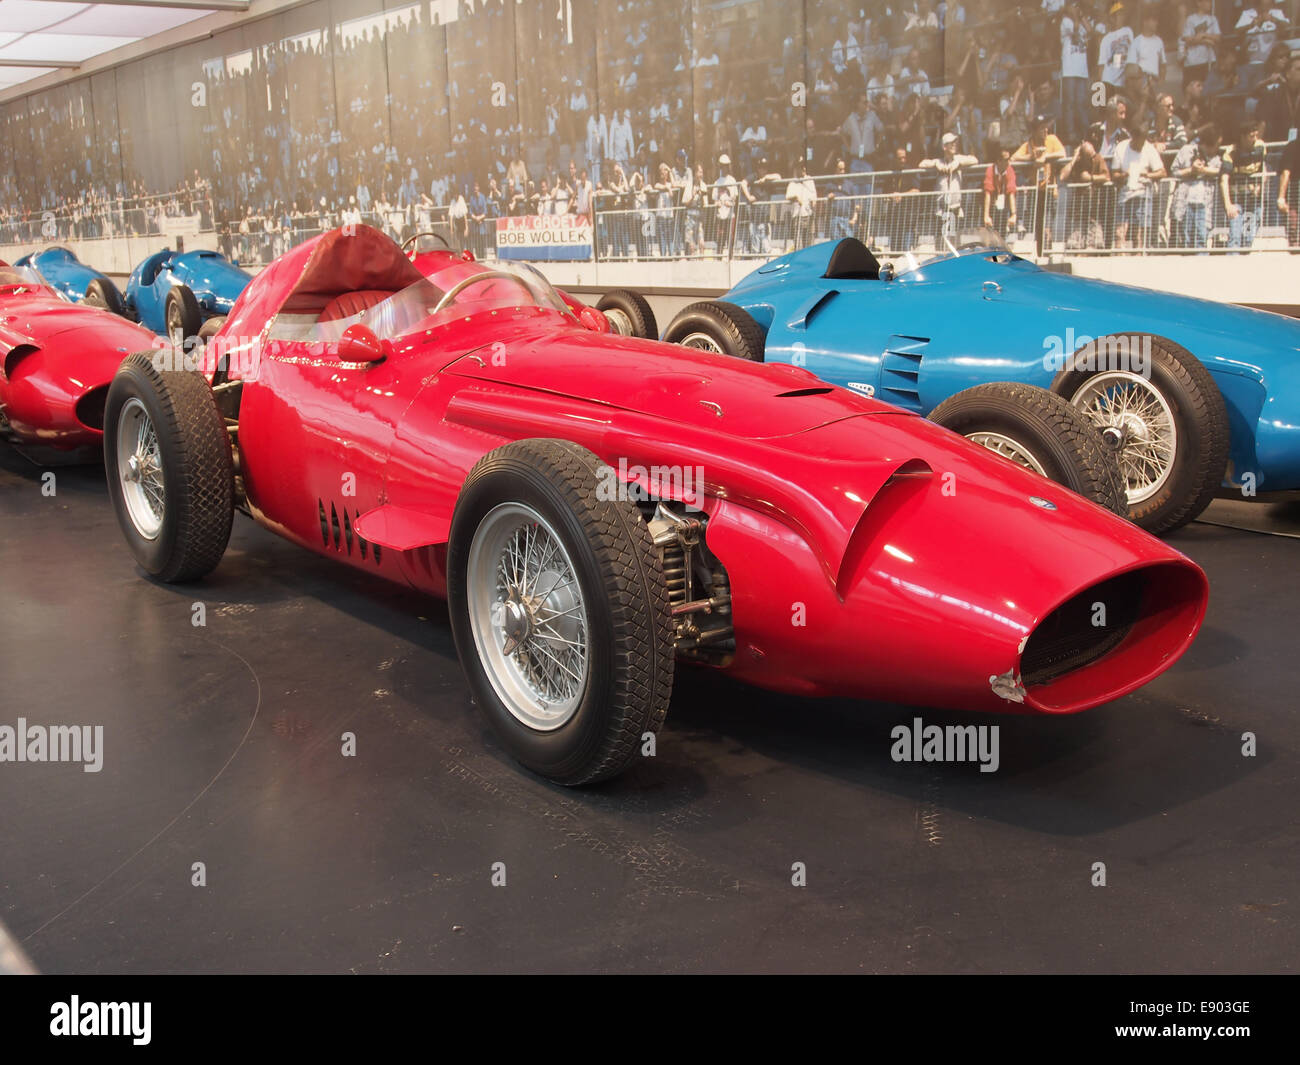 1958 Maserati GP 250, 6 cylinder, 290hp, 2494cm3, 280kmh, photo 1 - Stock Image